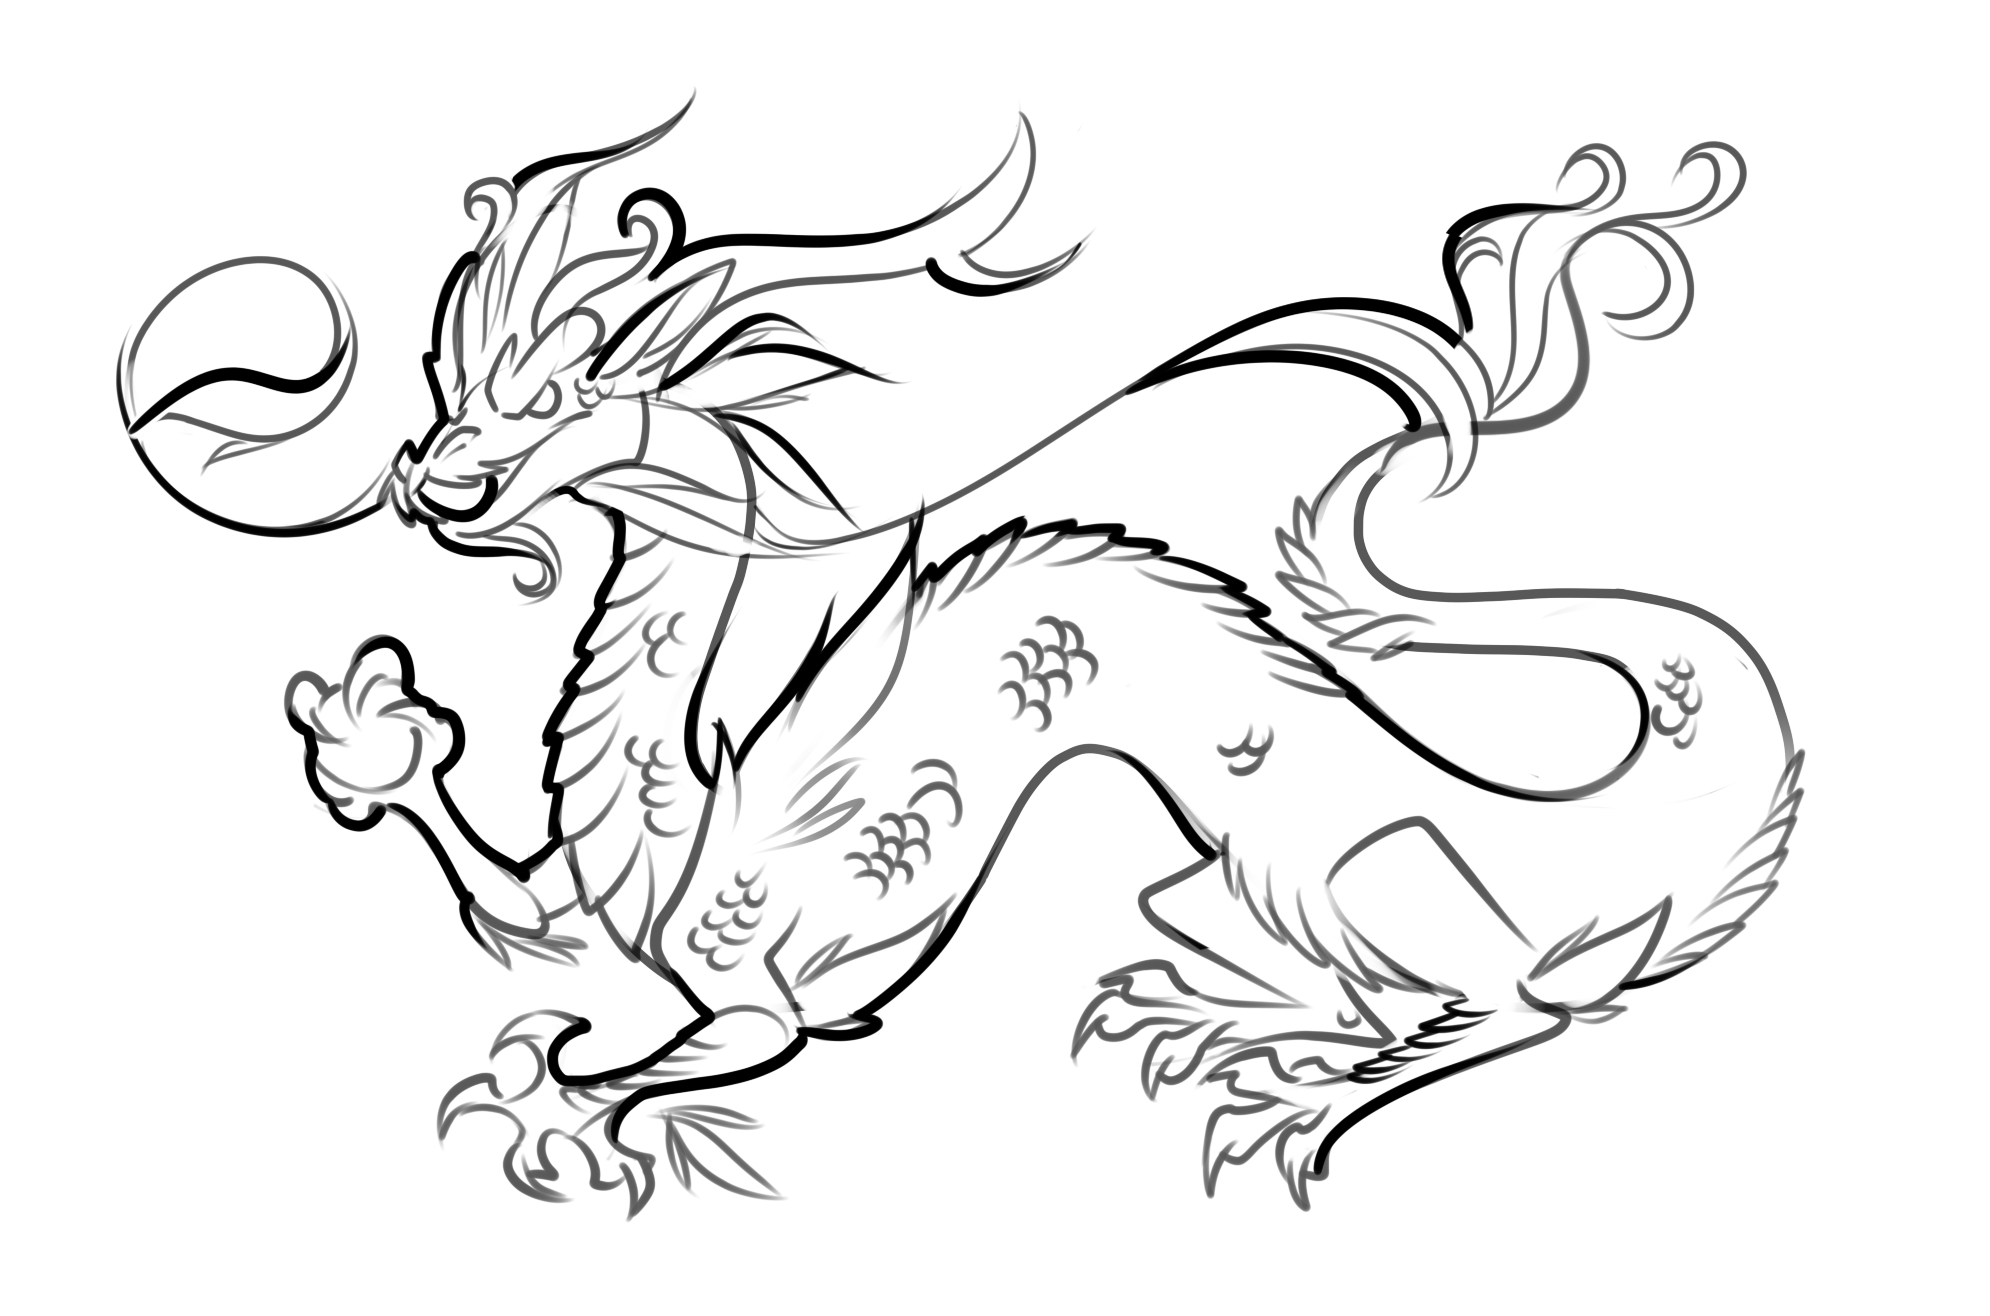 Sea Monster Coloring Pages Printable Dragon Coloring Pages Printable Coloring Page For Kids